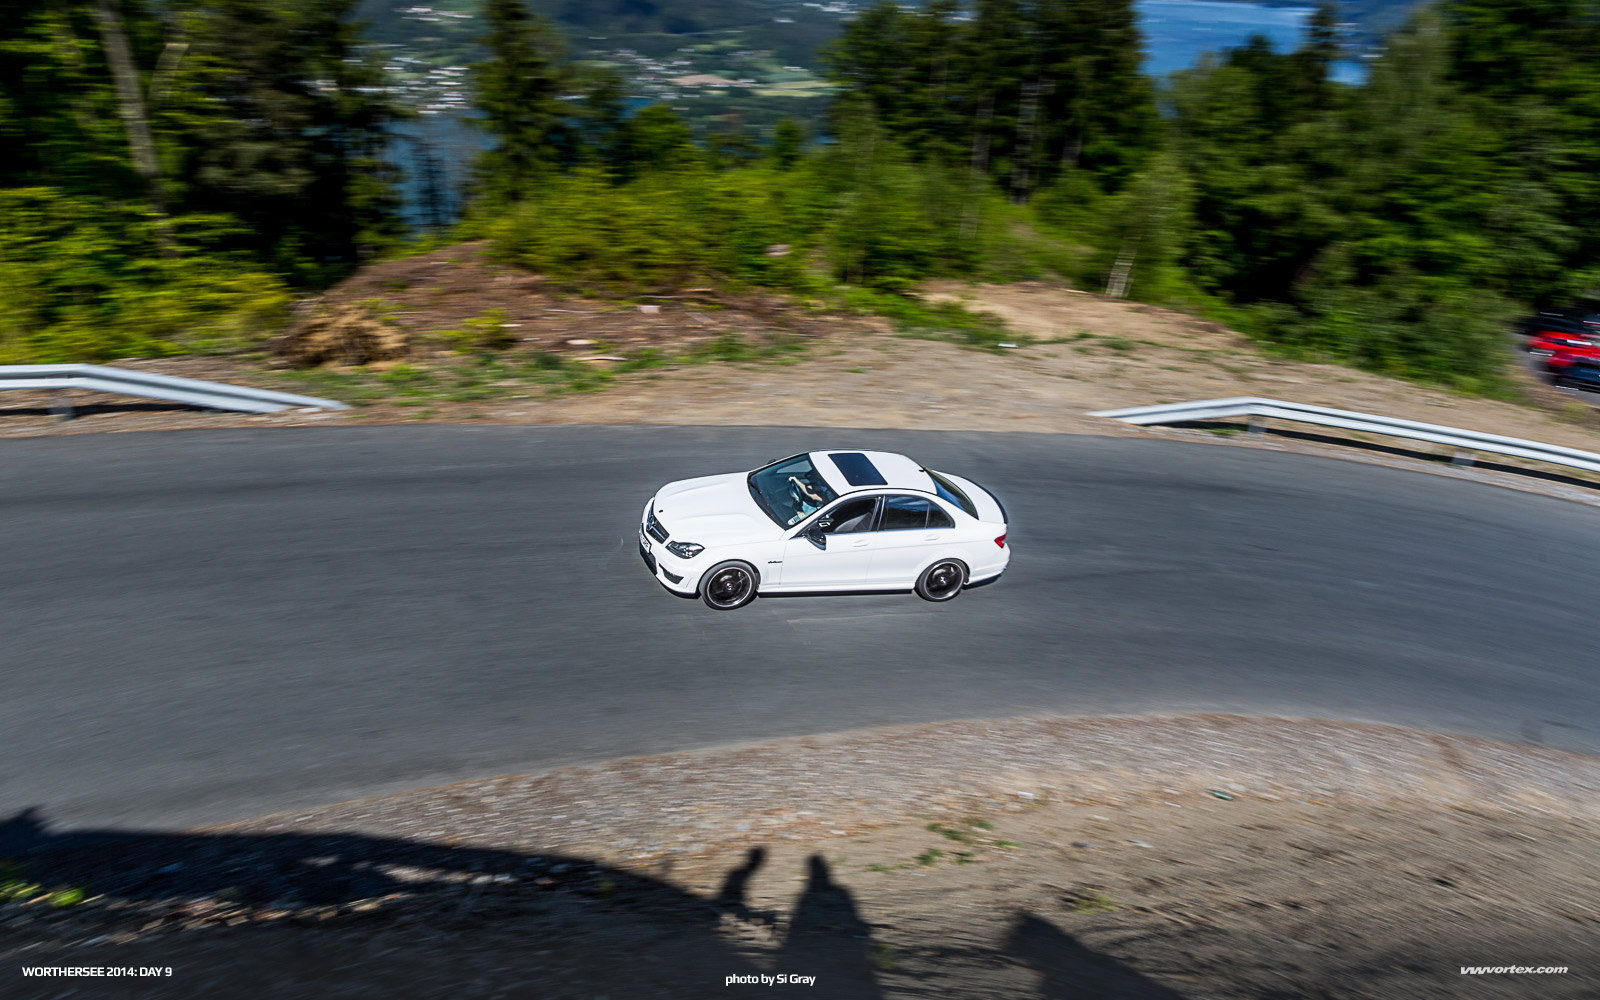 2014-Worthersee-Day-9-Si-Gray-416